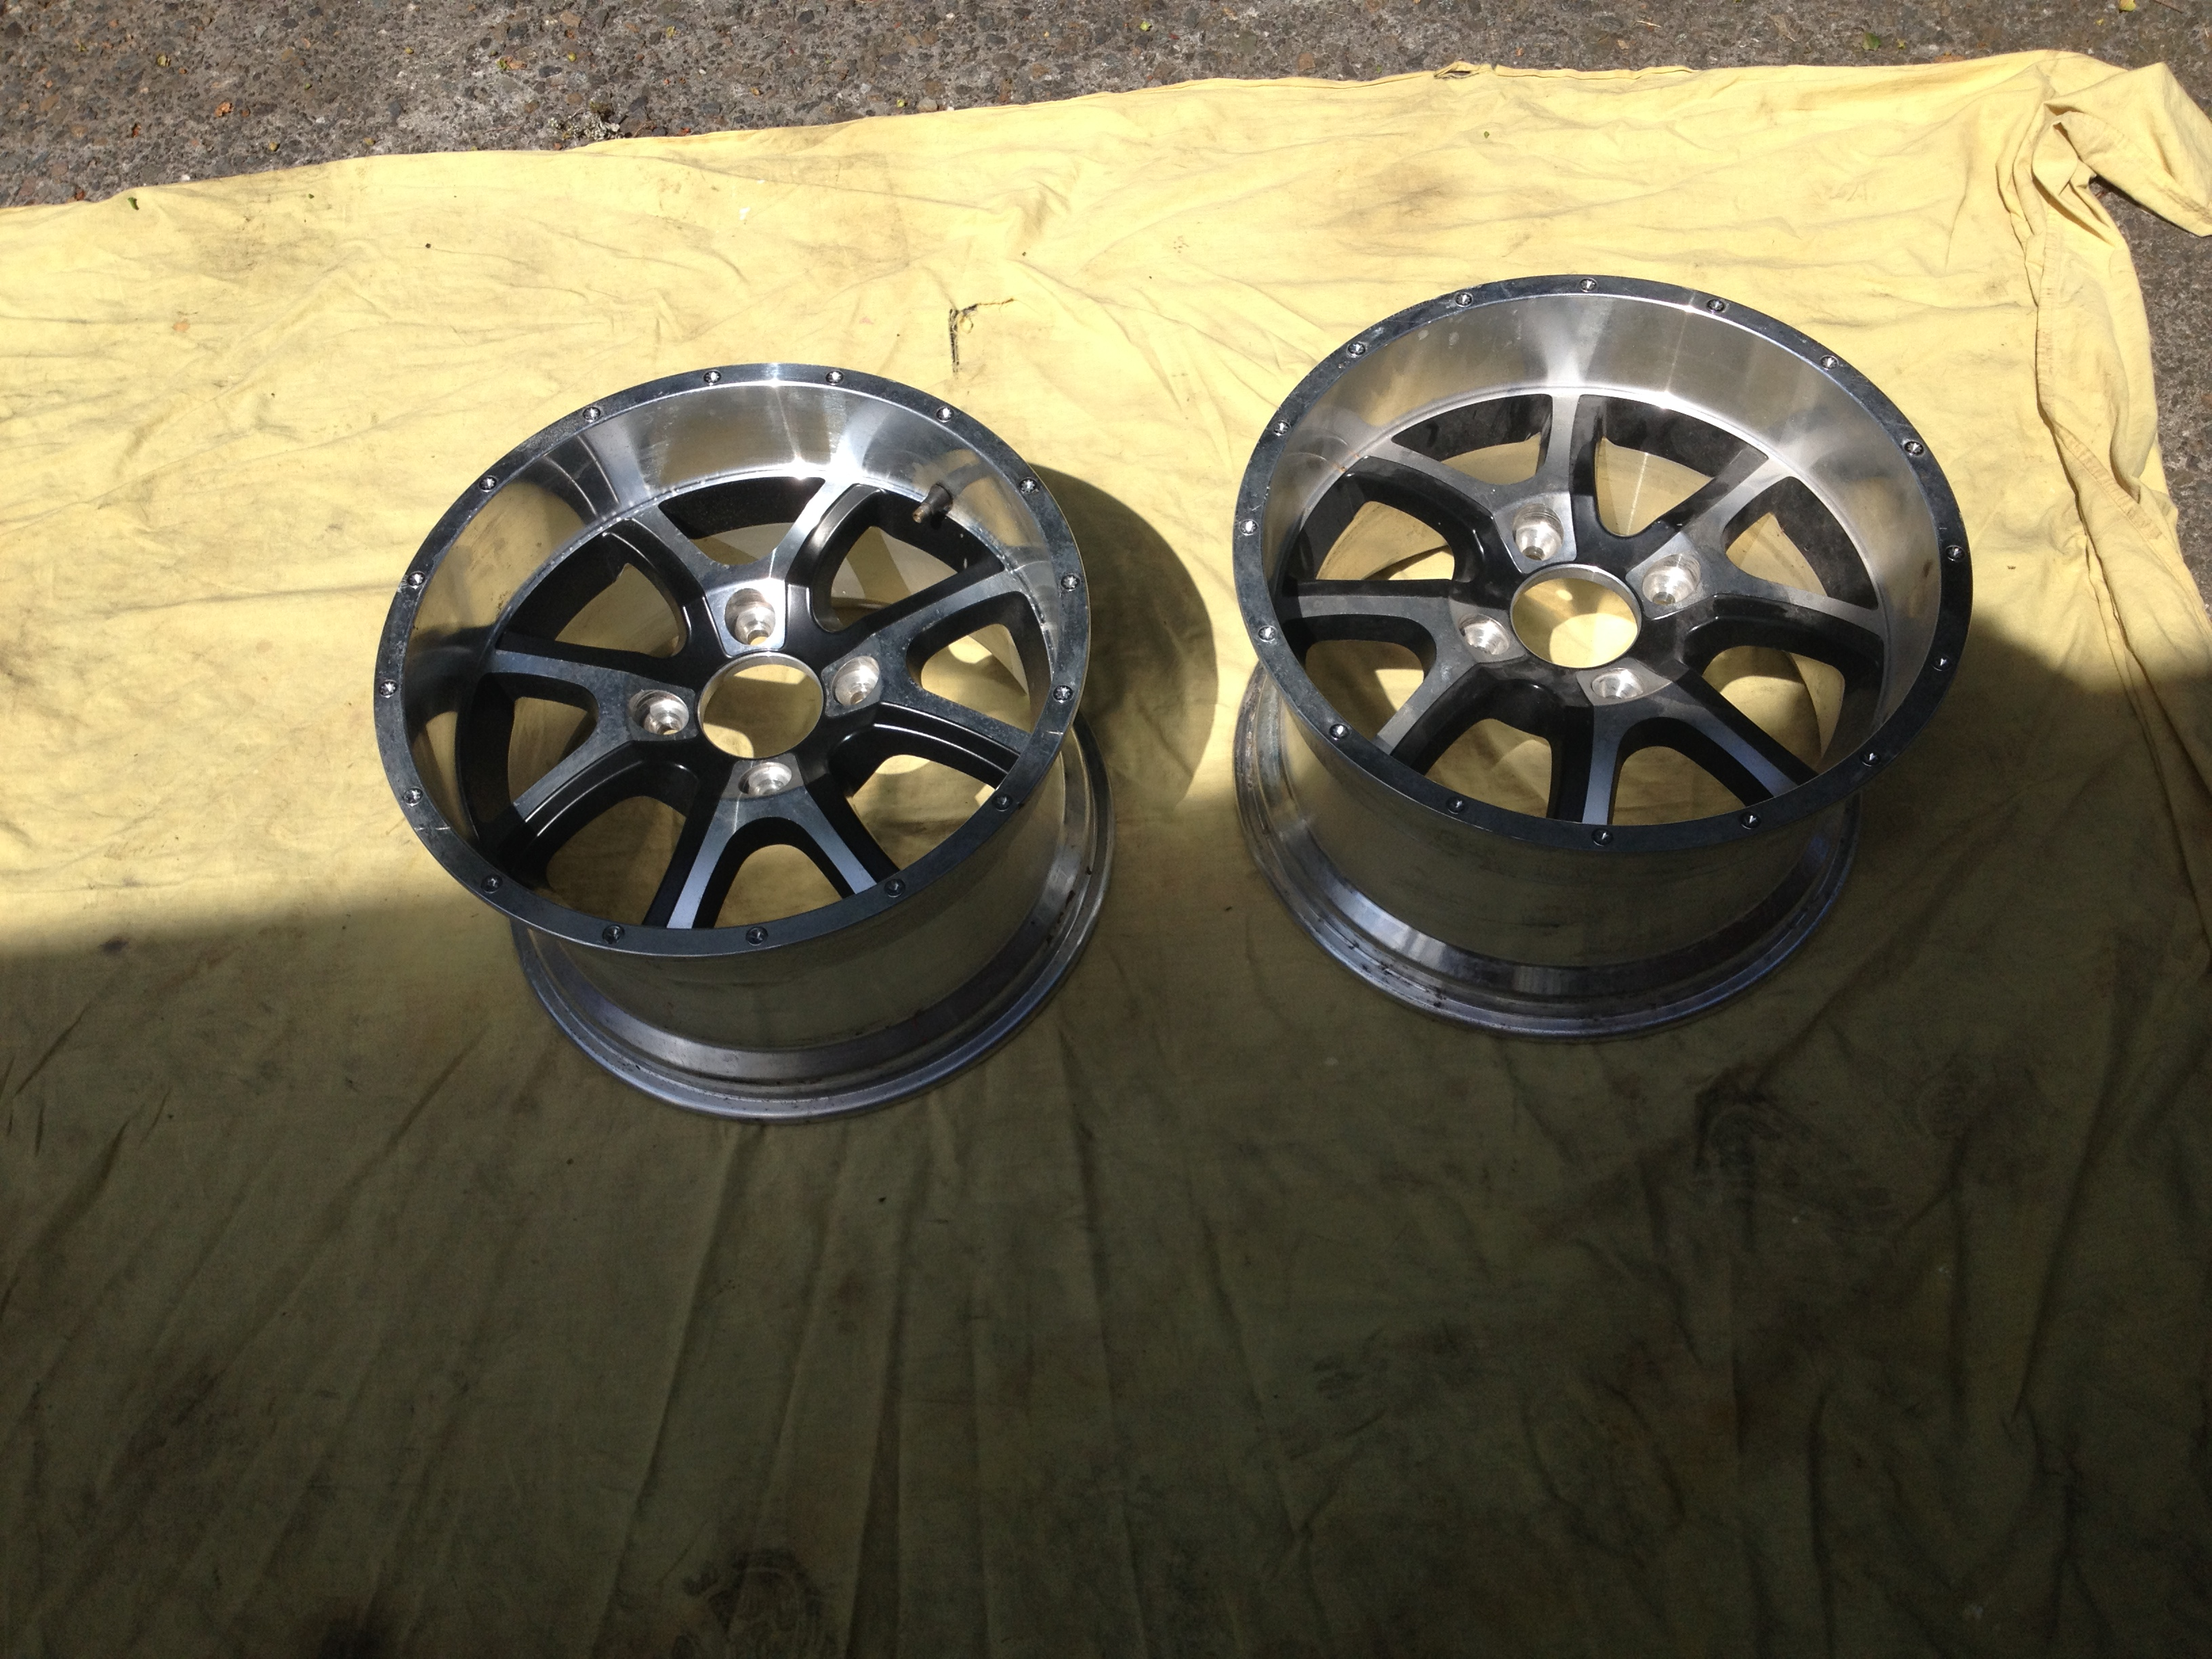 new high mazda all fl tire rims ideas prueba with rines and part